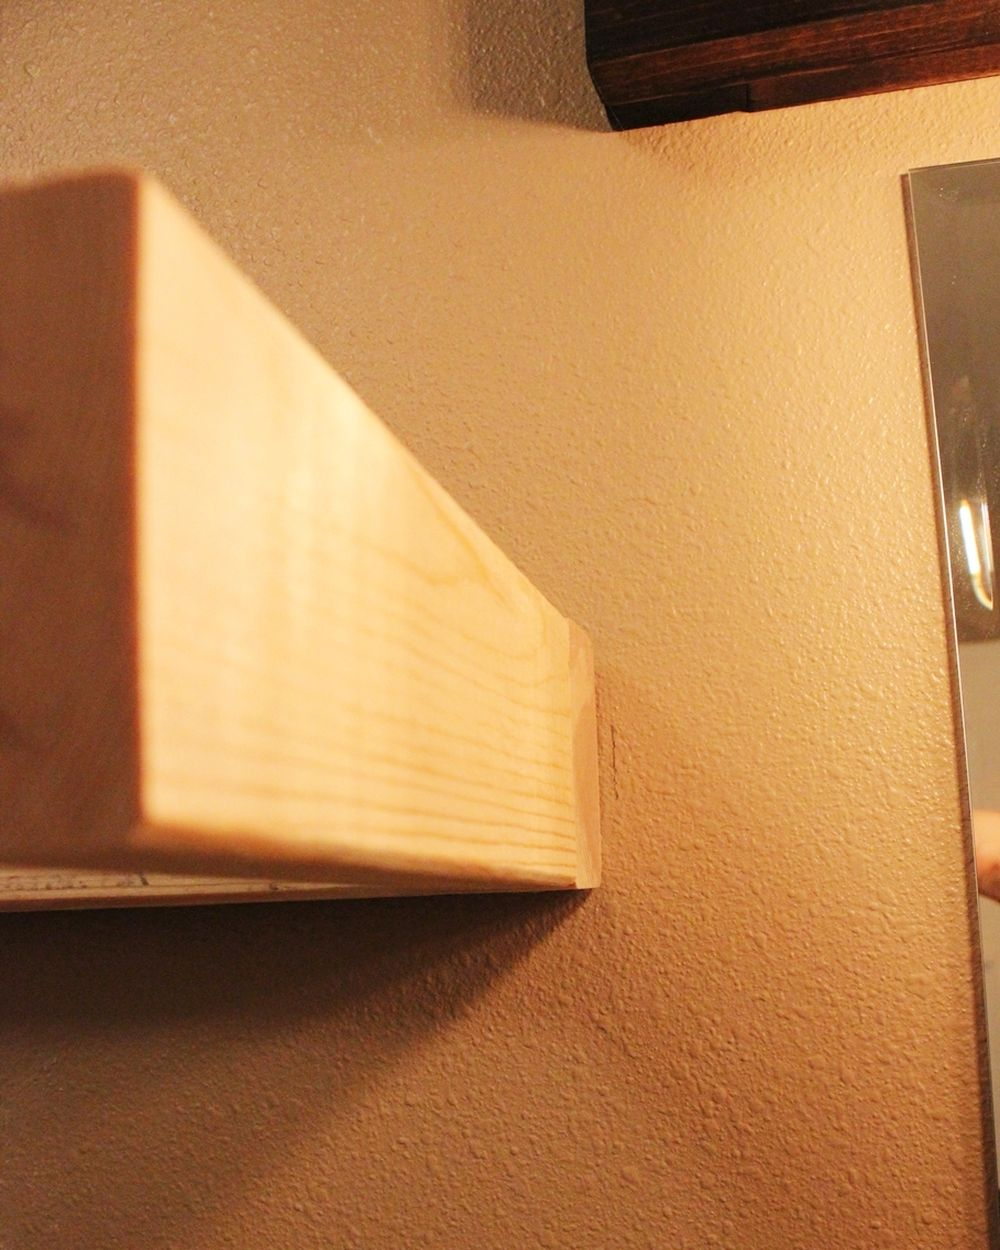 diy-floating-shelves-marking-from-the-level